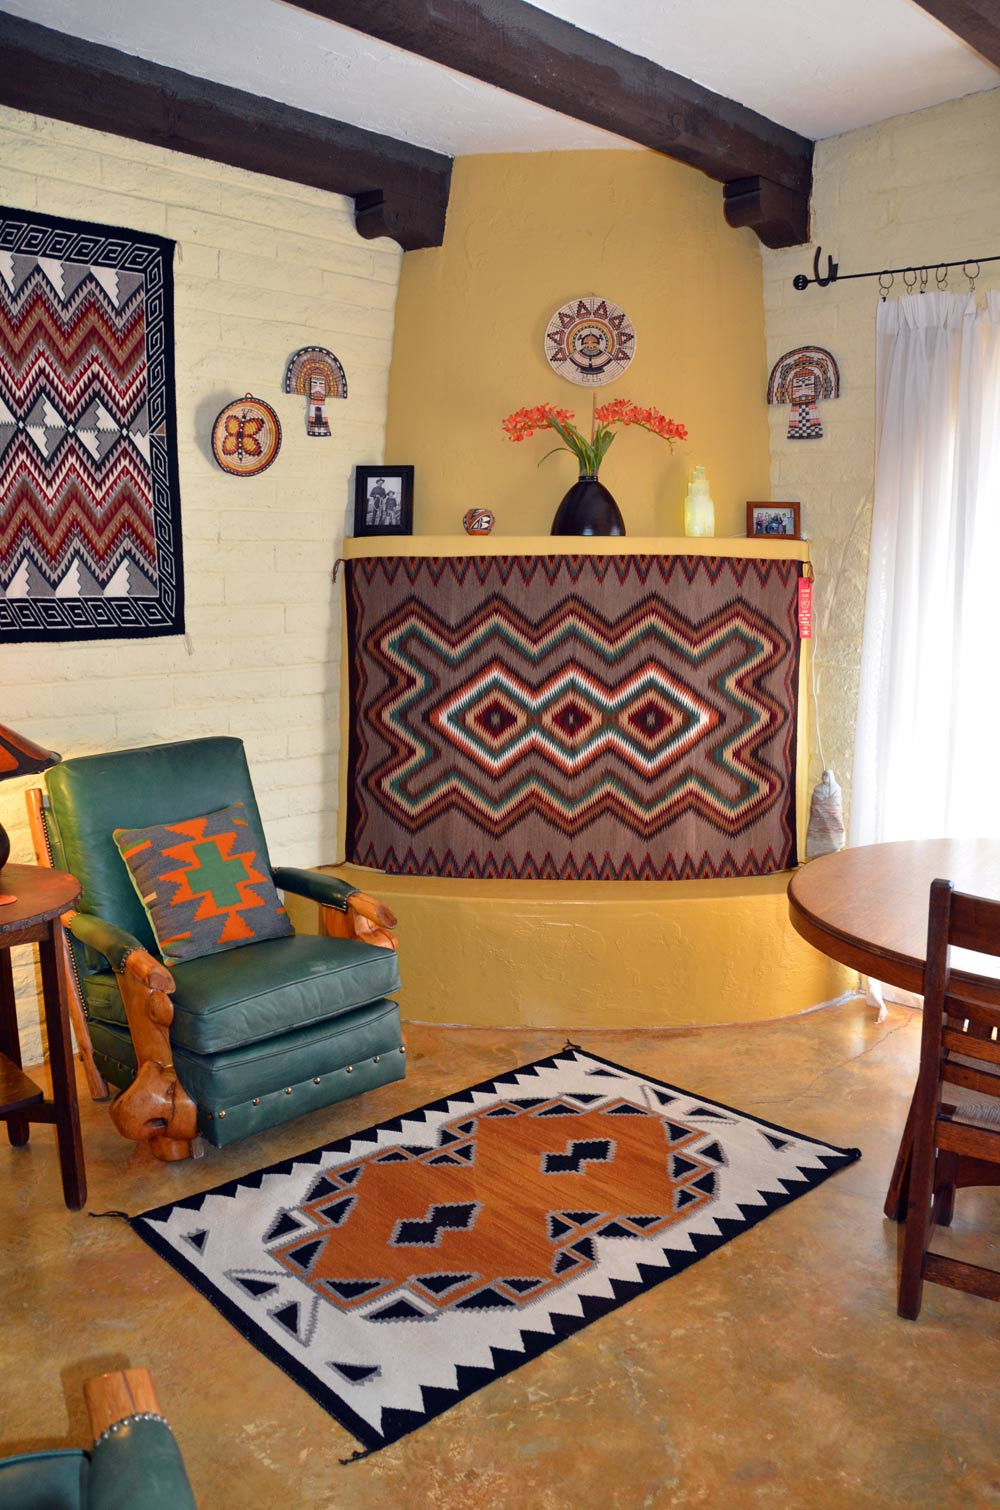 WSHG.NET BLOG | 5 Ways to Transform a Room with Navajo Weavings | At on database design wallpaper, visual design wallpaper, windows design wallpaper, logo design wallpaper, web design wallpaper, graphic design wallpaper, basic design wallpaper, revit design wallpaper, ui design wallpaper,